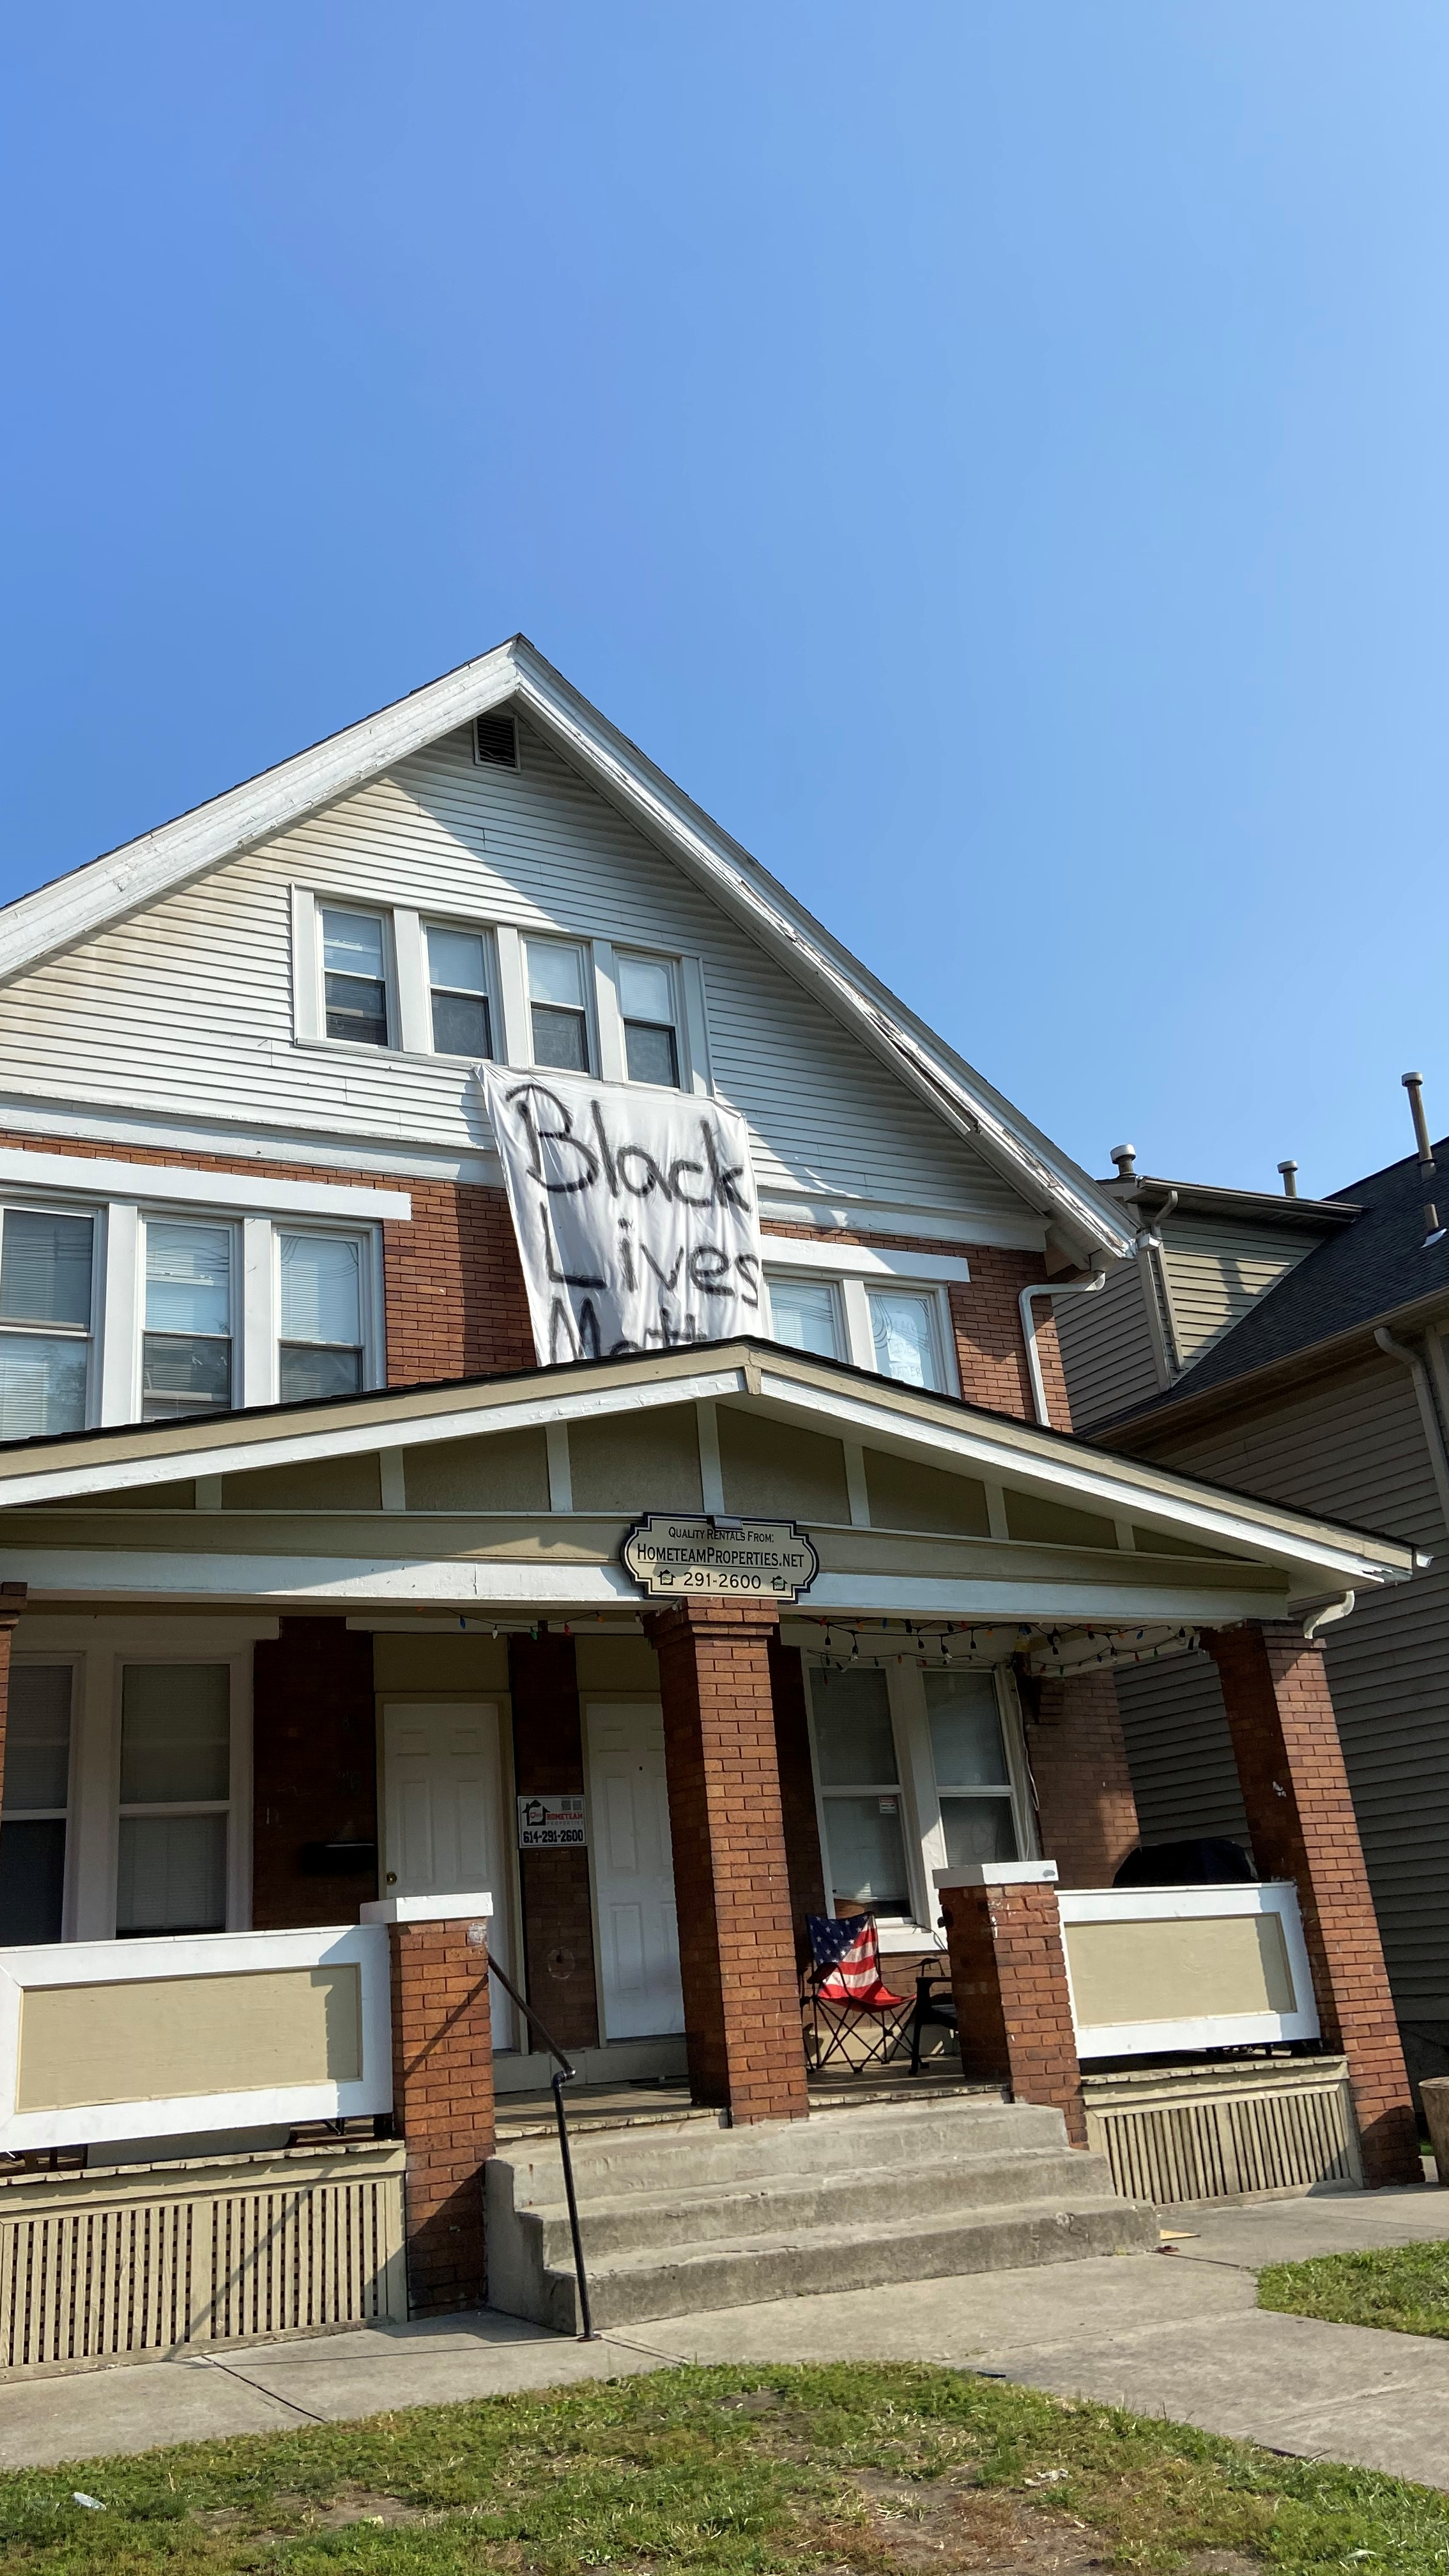 House with Black Lives Matter painted on a sheet hanging from window